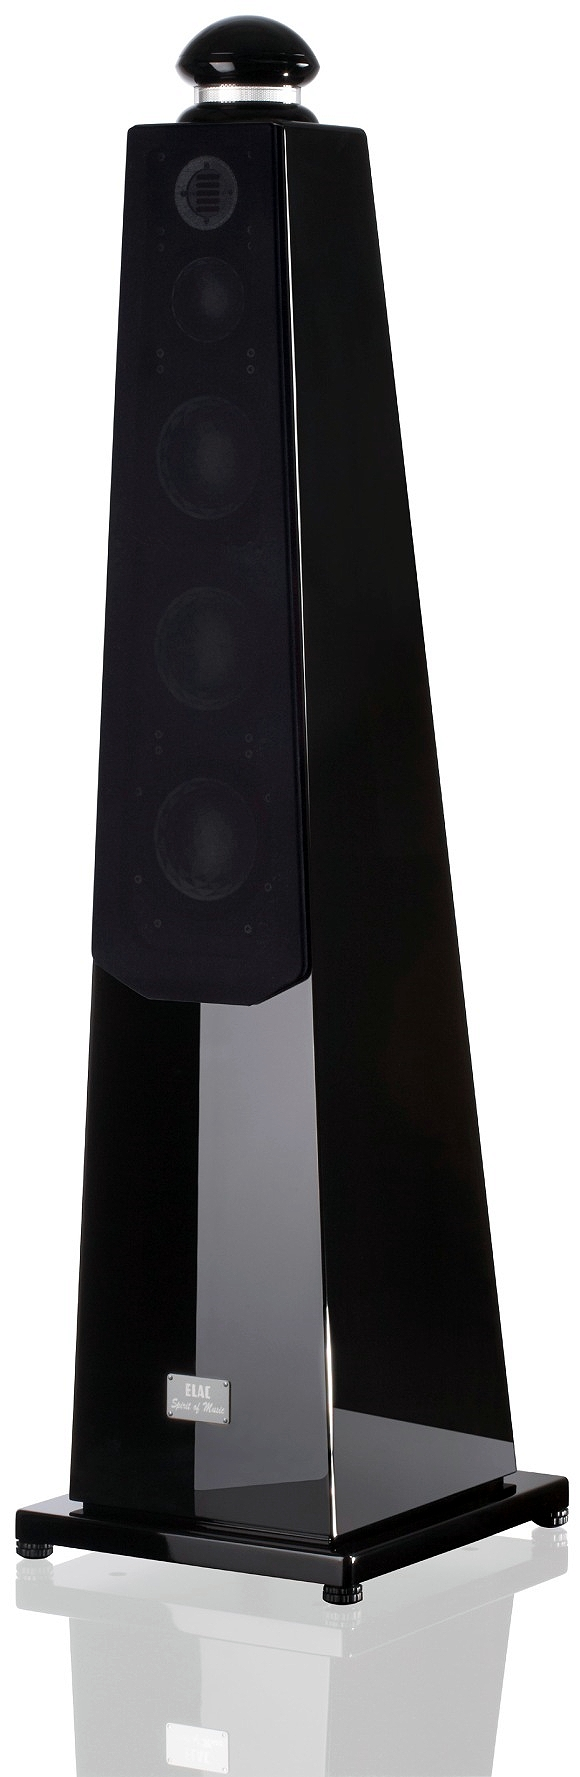 ELAC Spirit Of Music CE black high gloss